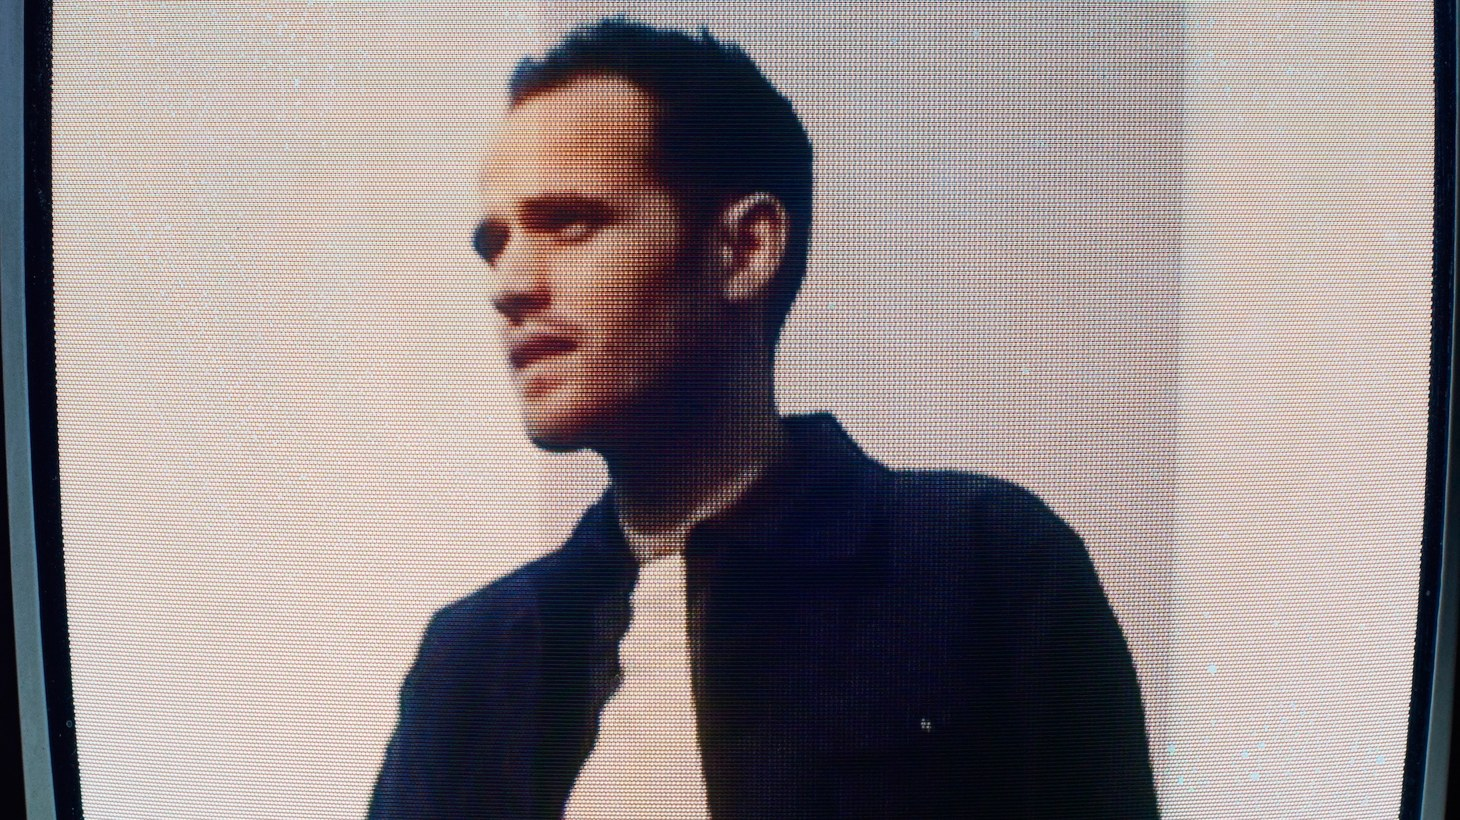 """After a short hibernation, """"Mind's Eye"""" is the first new track by Jordan Rakei in 2019. Inspired by dystopian visions of the future,the subject of the song experiences a technological malfunction, flooding the """"Mind's Eye"""" with chaos."""